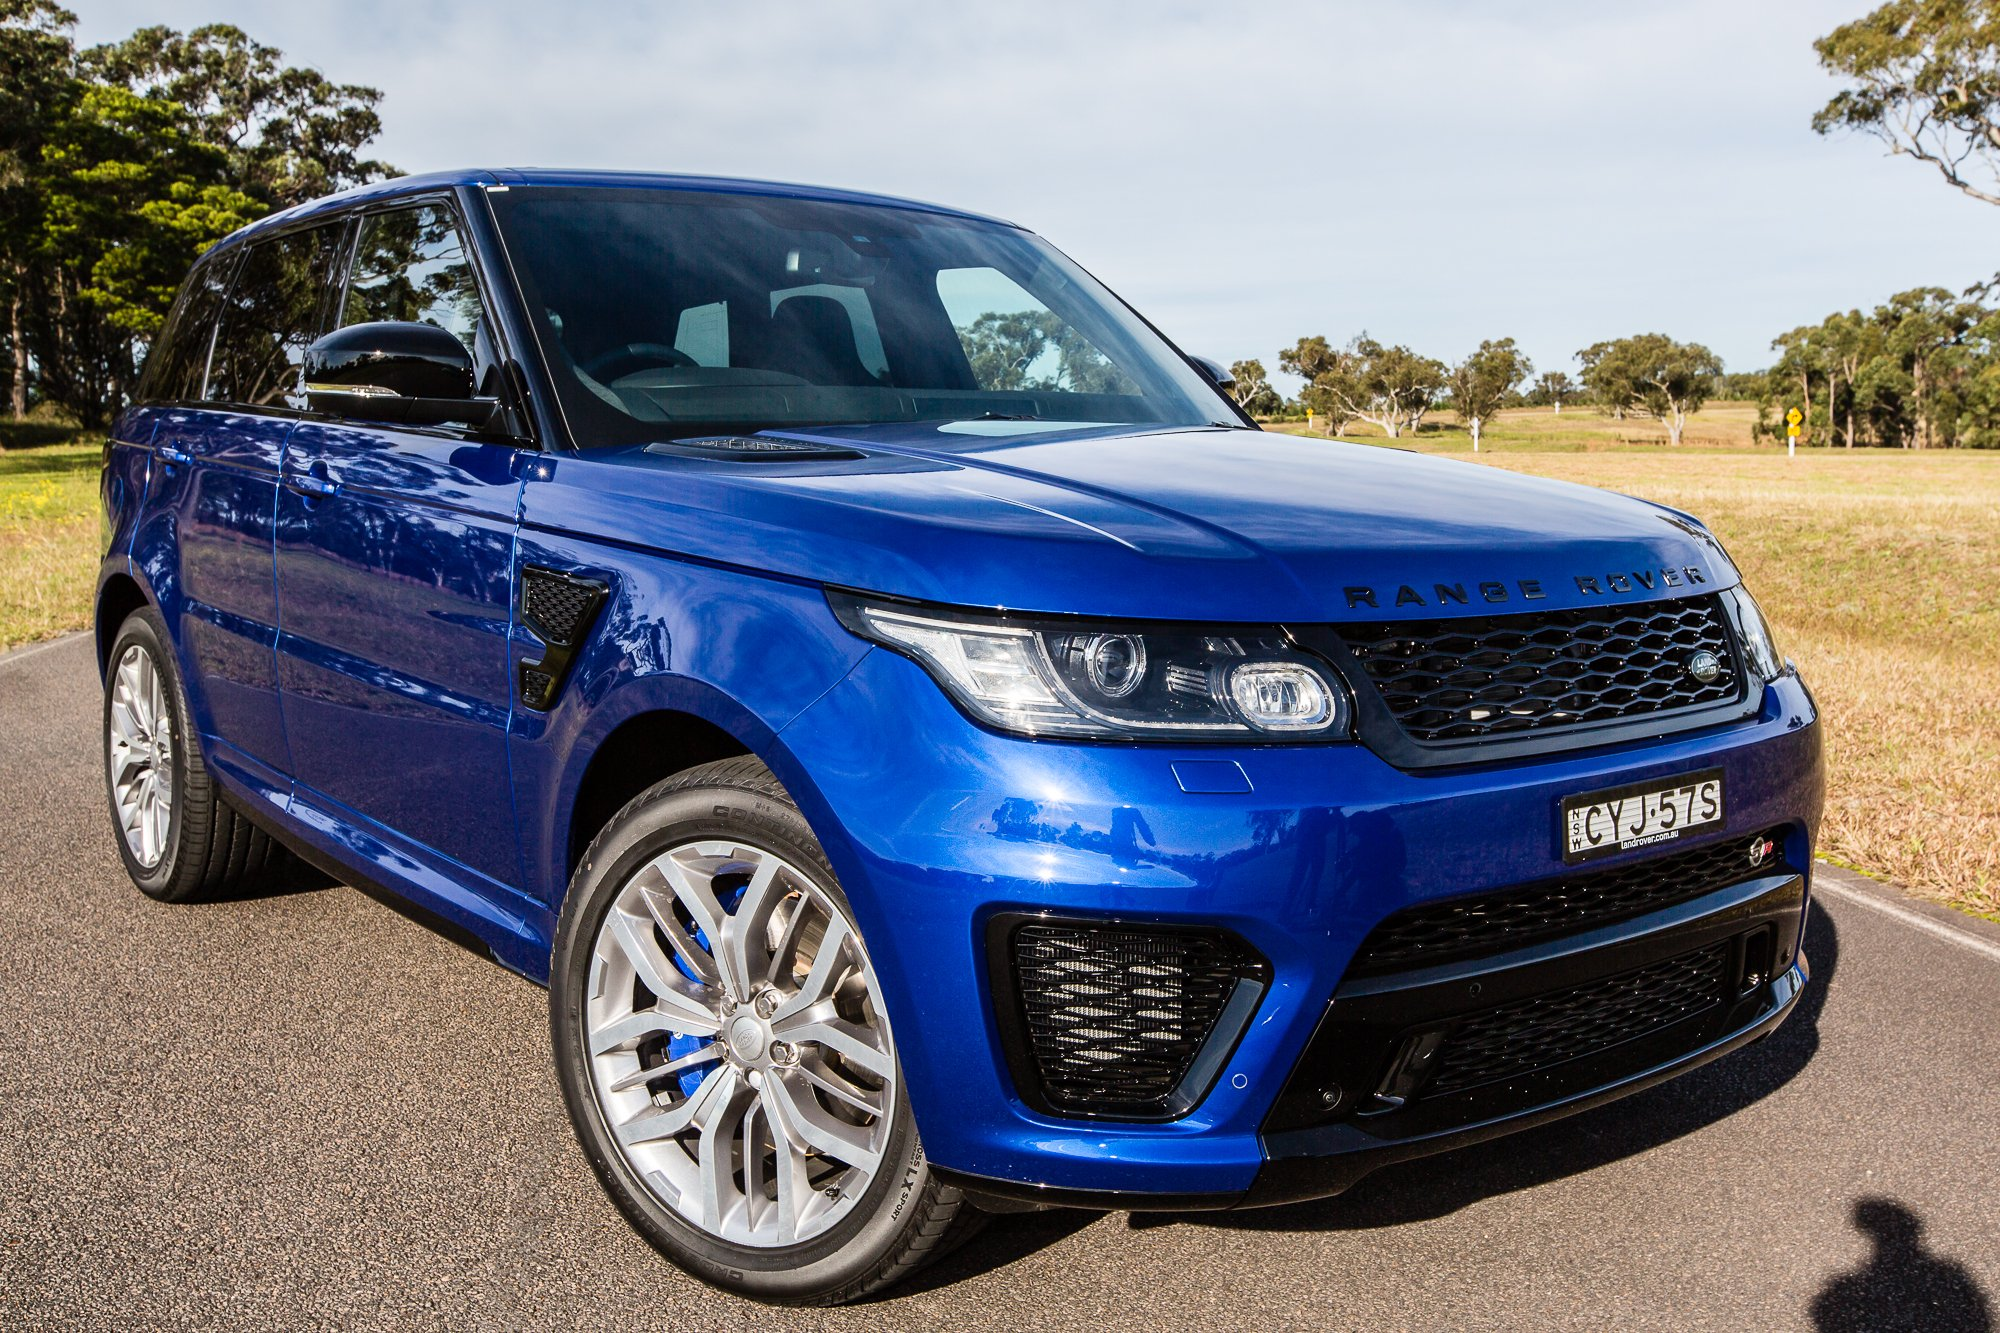 2015 range rover sport svr pricing and specifications photos 1 of 4. Black Bedroom Furniture Sets. Home Design Ideas